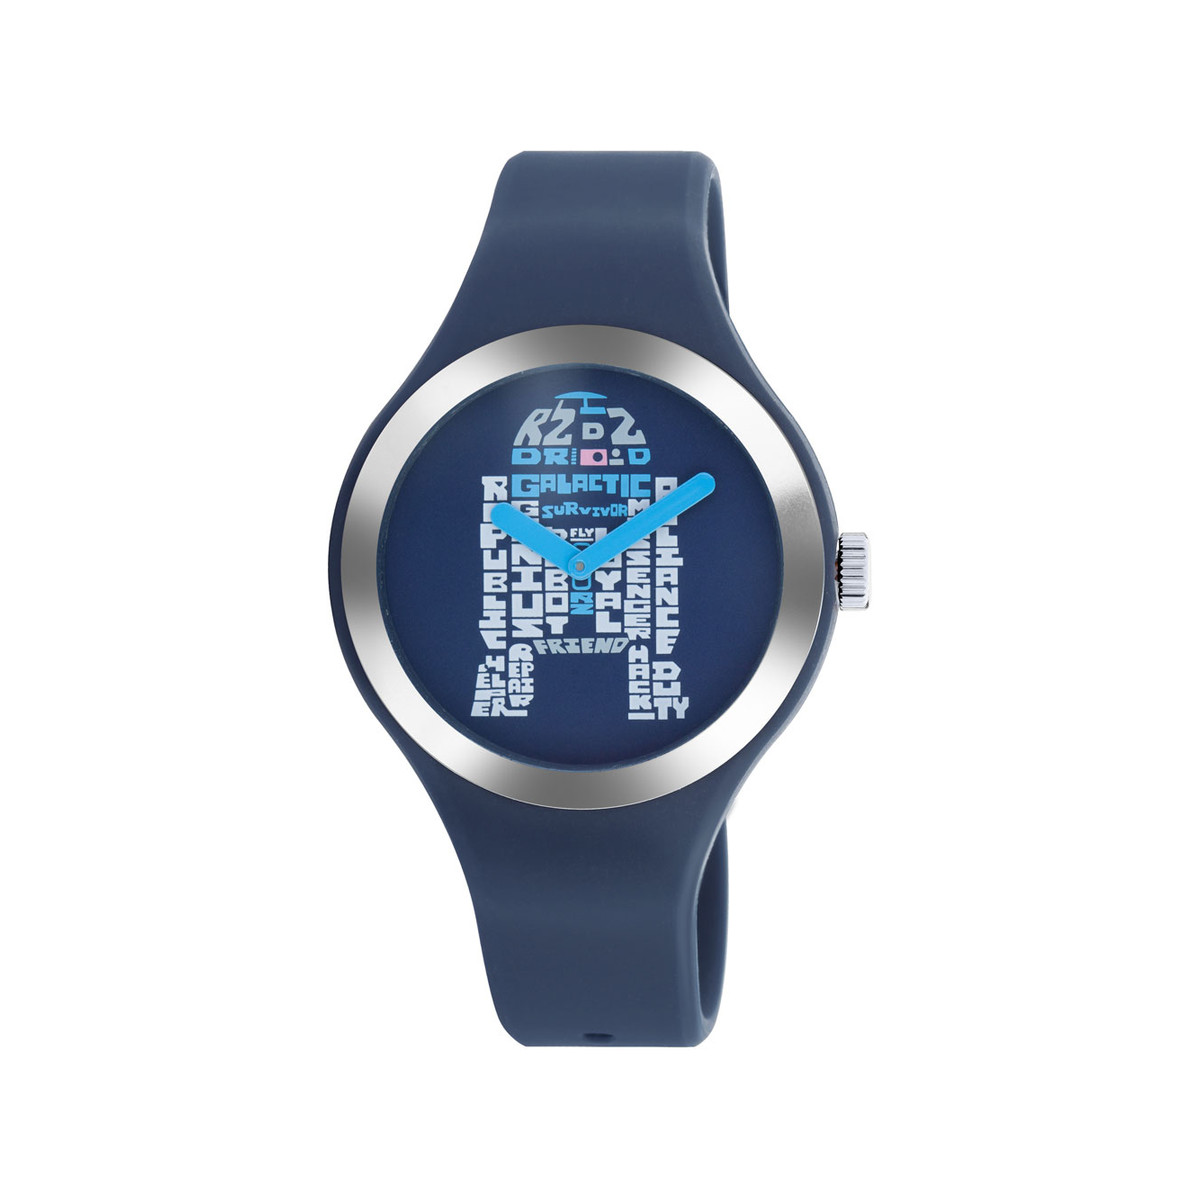 Montre AM:PM Star Wars mixte aluminium caoutchouc